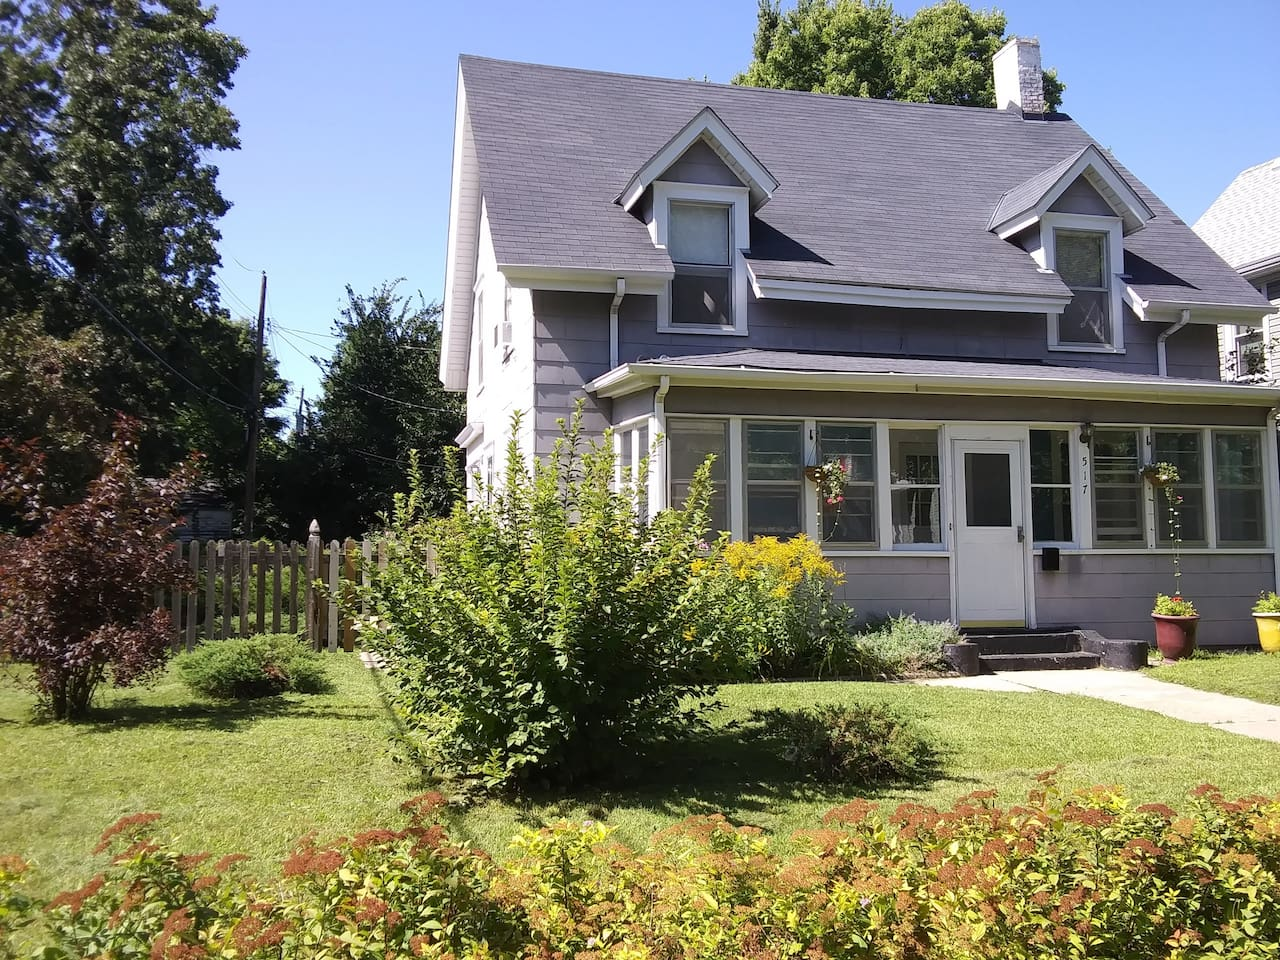 Fabulous Minneapolis is located on an generously sized lot in the heart of the city and within walking distance to restaurants, bars, and shopping. This home is close to the University of Minnesota, downtown Minneapolis, and the Mississippi River.